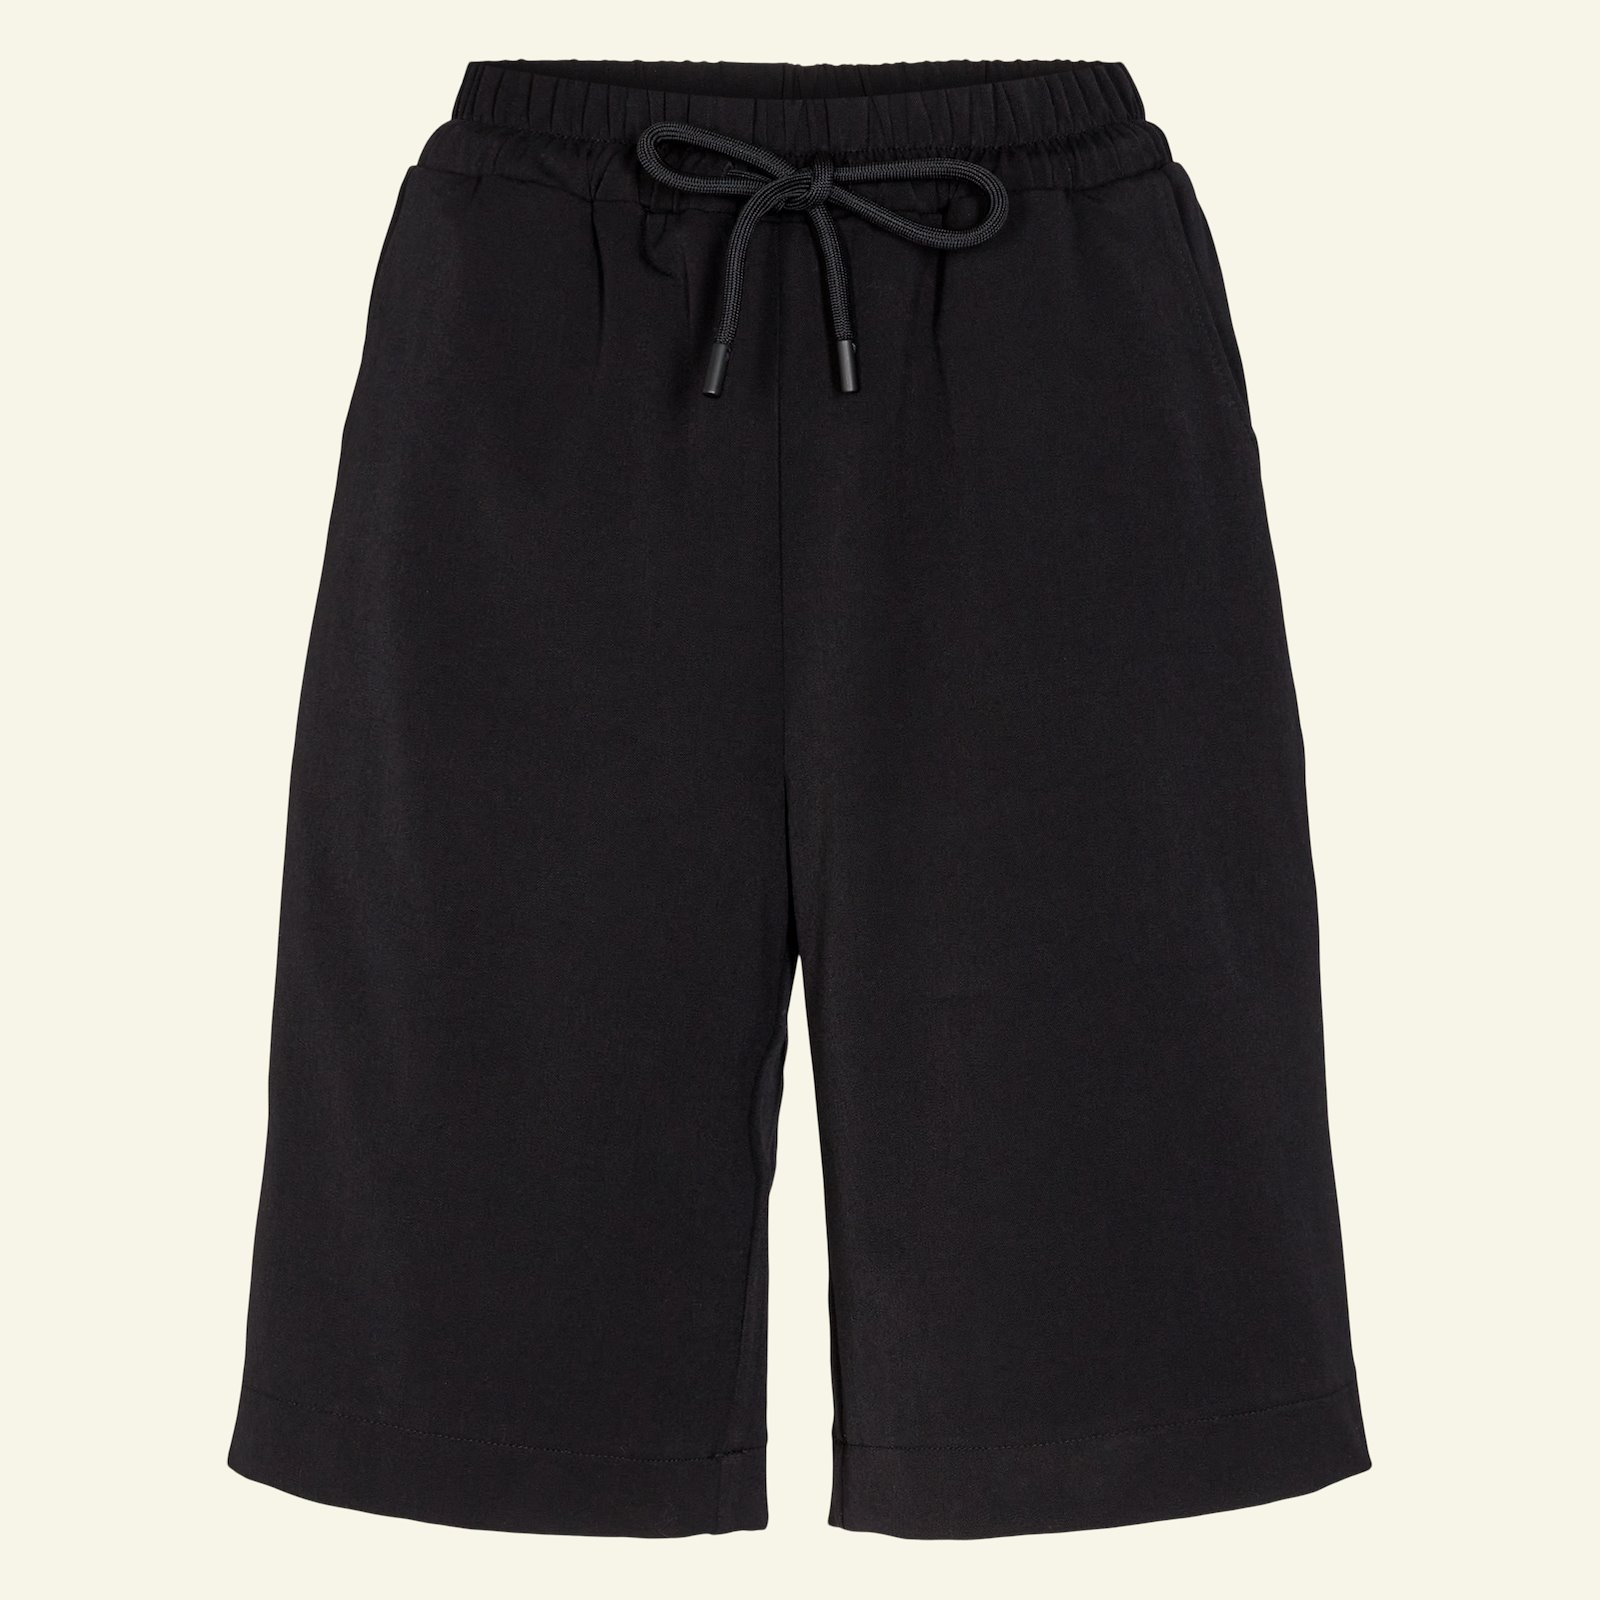 Wide trousers/shorts w. pockets, 42/14 p20051_460563_sskit